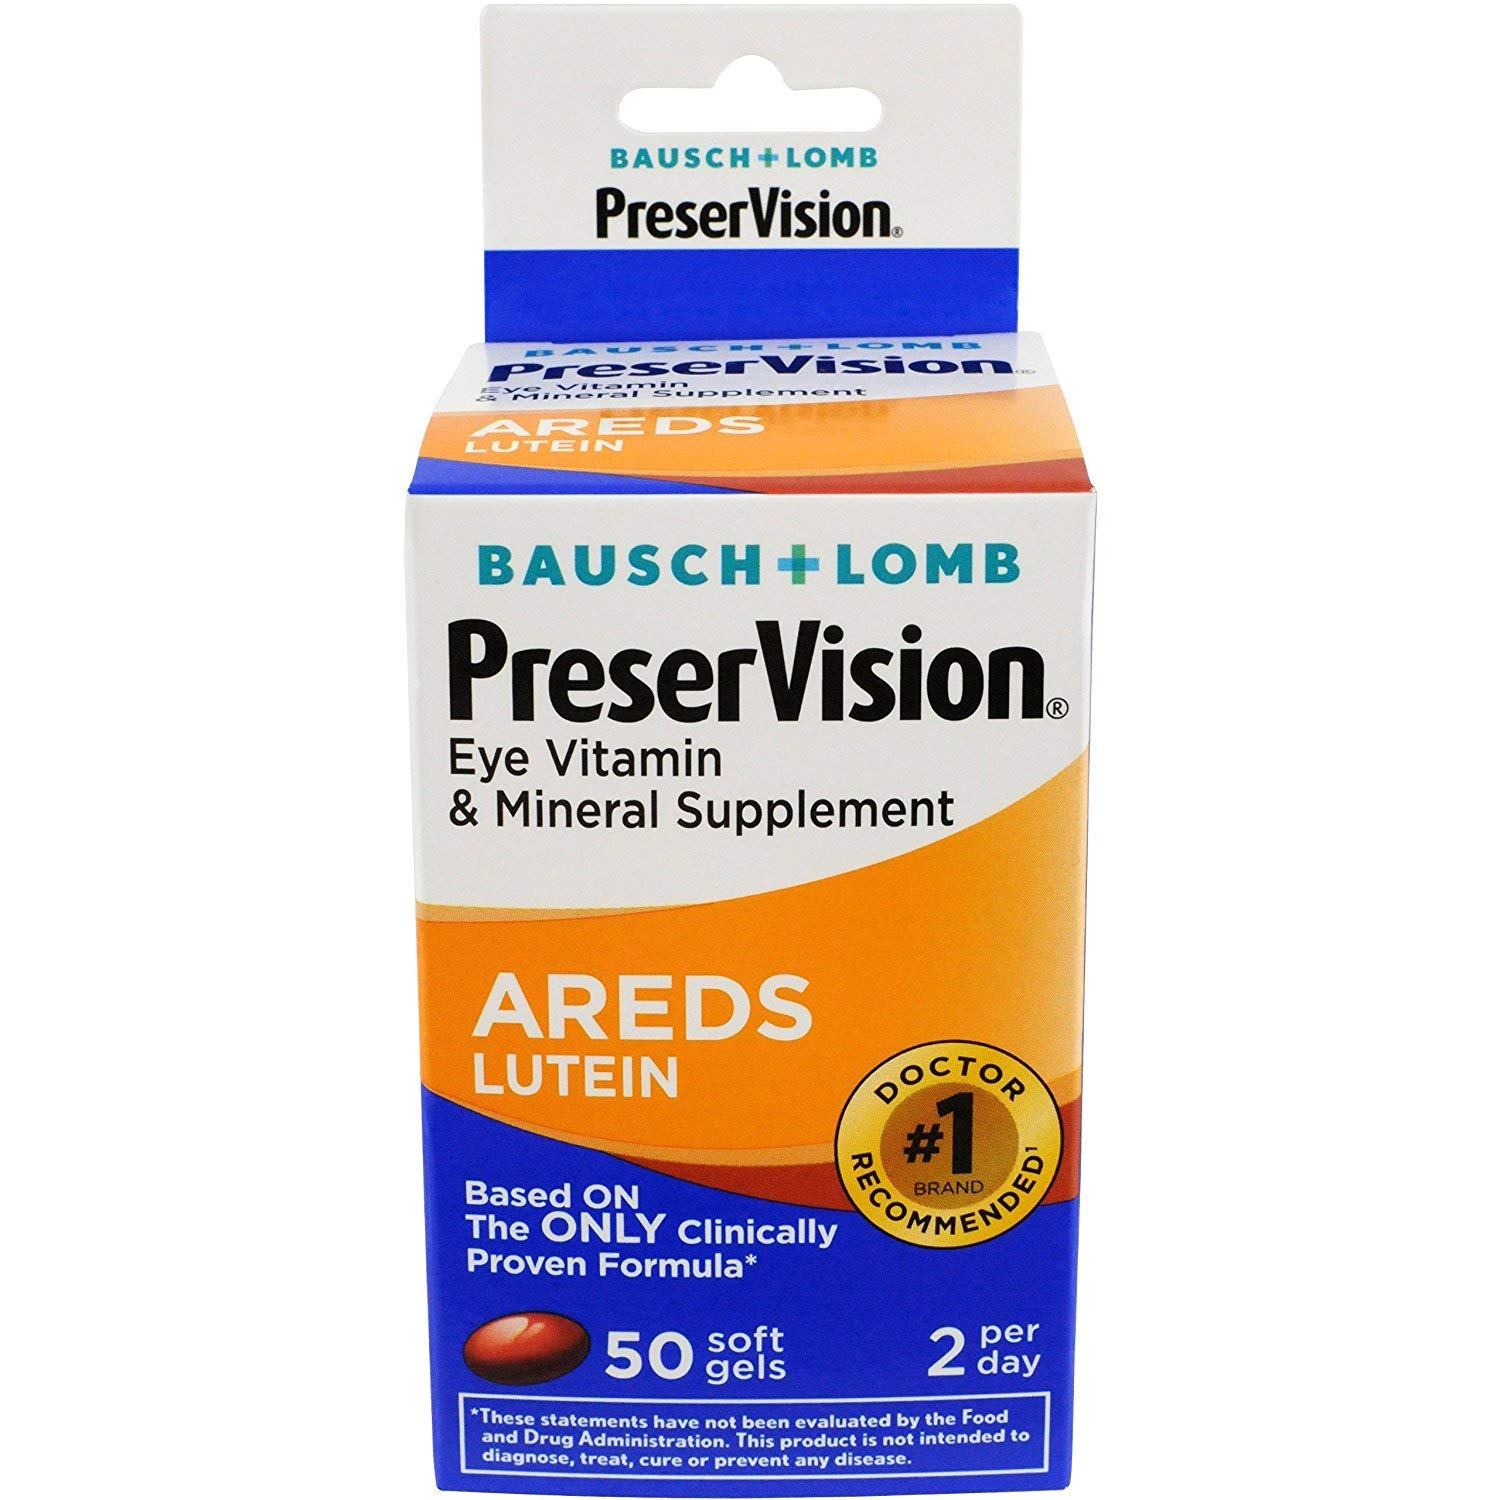 PreserVision Eye Vitamin and Mineral Supplement AREDS With Lutein - 50 Softgels, Pack of 4